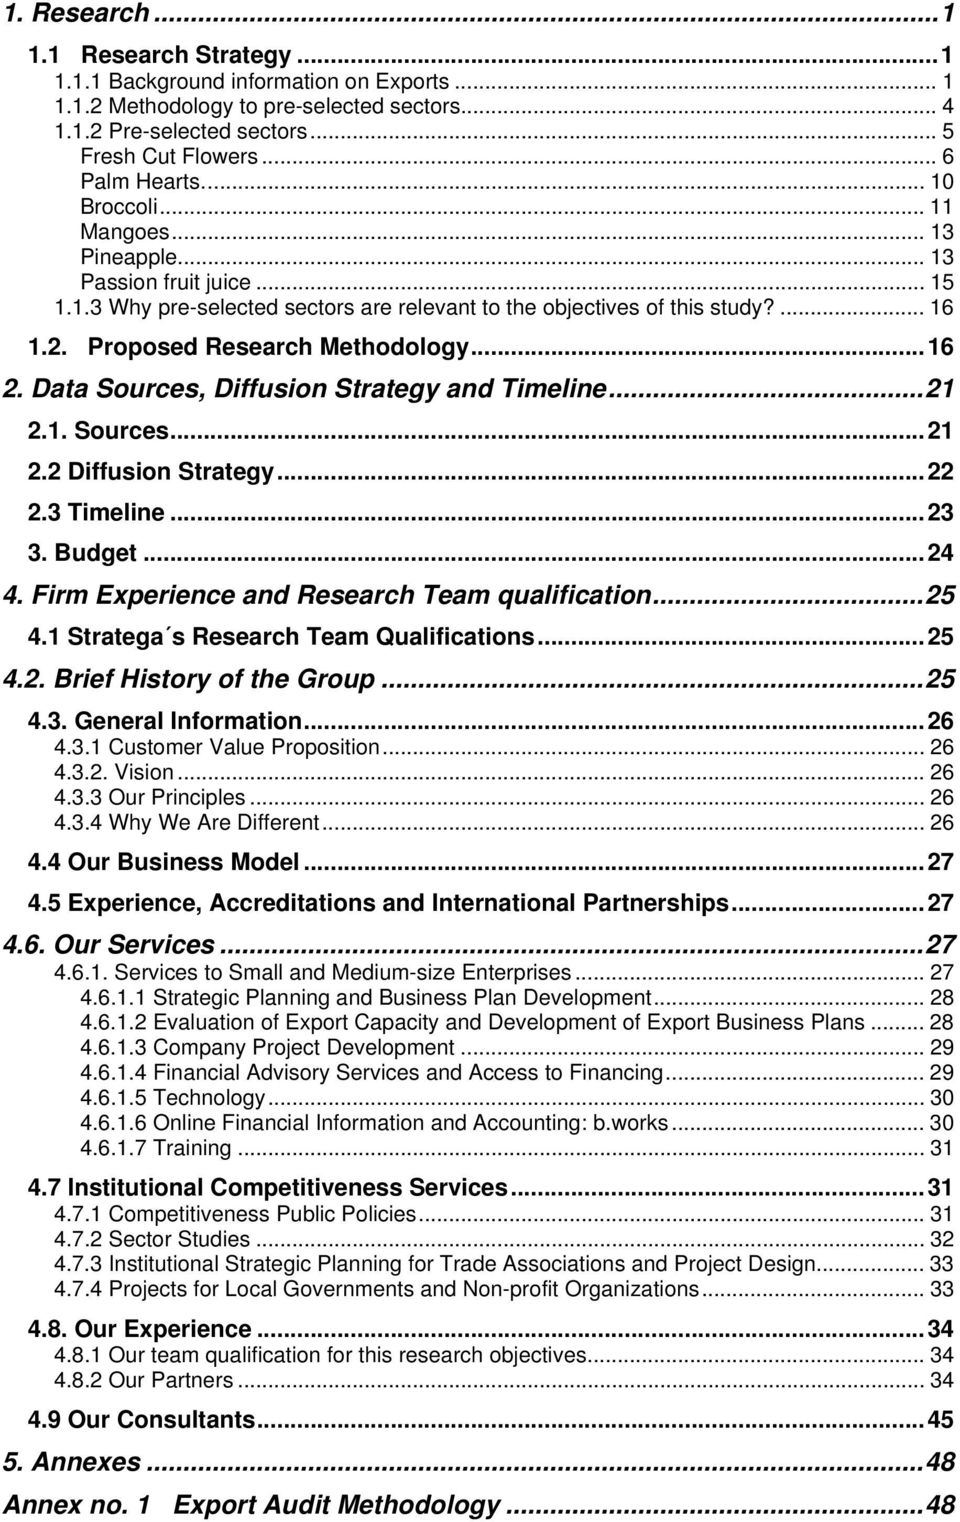 Data Sources, Diffusion Strategy and Timeline...21 2.1. Sources...21 2.2 Diffusion Strategy...22 2.3 Timeline...23 3. Budget...24 4. Firm Experience and Research Team qualification...25 4.